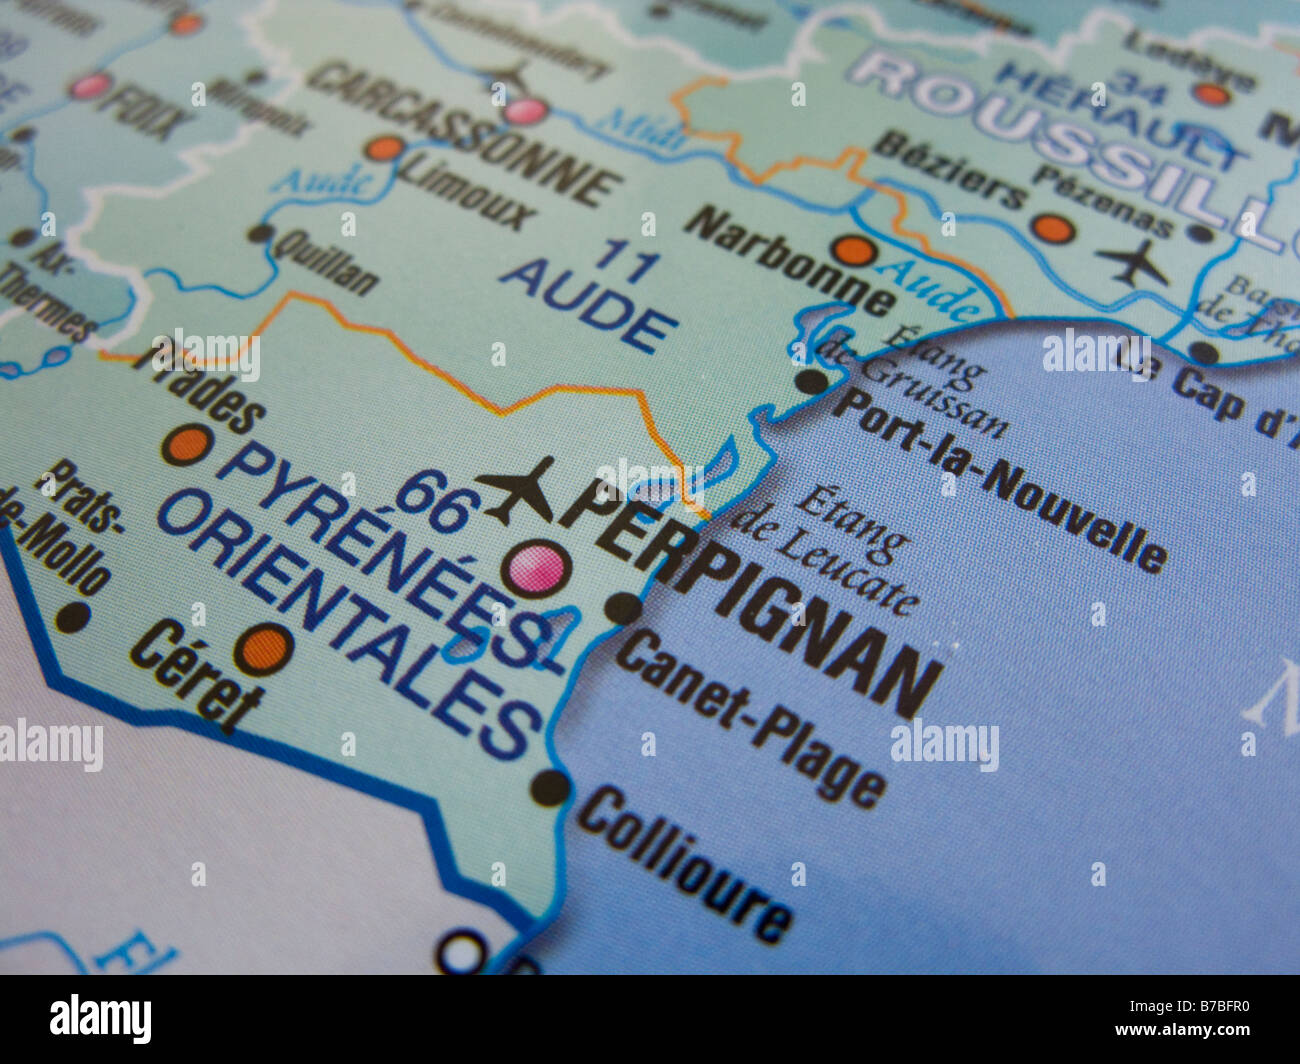 Map of France showing Perpignan and its surrounding areas Stock